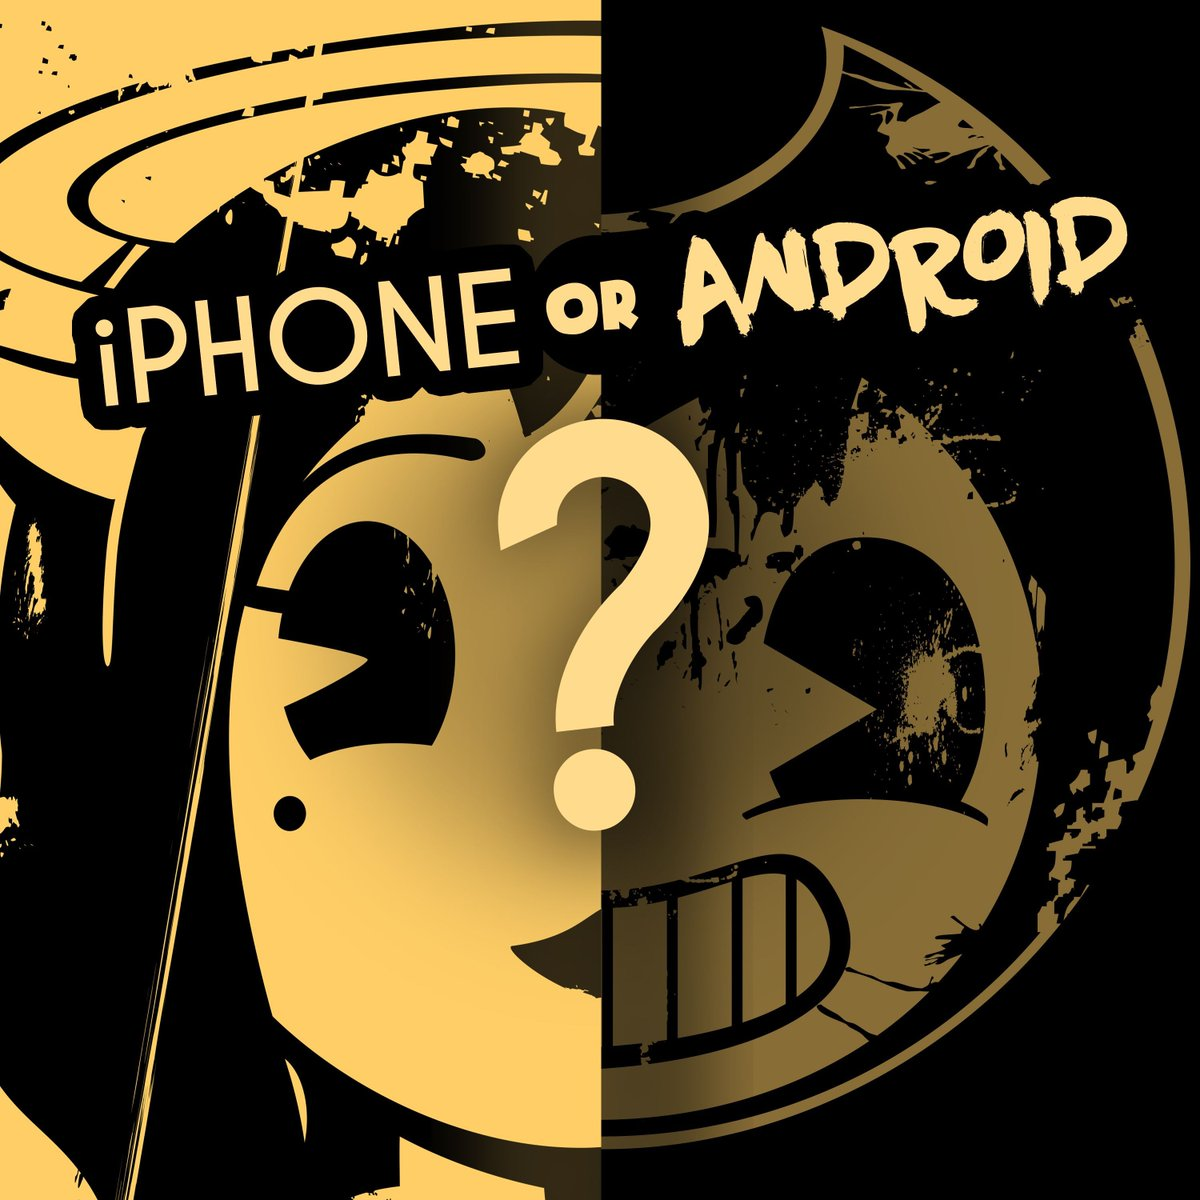 With all the talk of new phones last week, can&#39;t help but wonder which phone you&#39;re seeing this on?  #BATIM #apple #android<br>http://pic.twitter.com/phUHBkPTwE